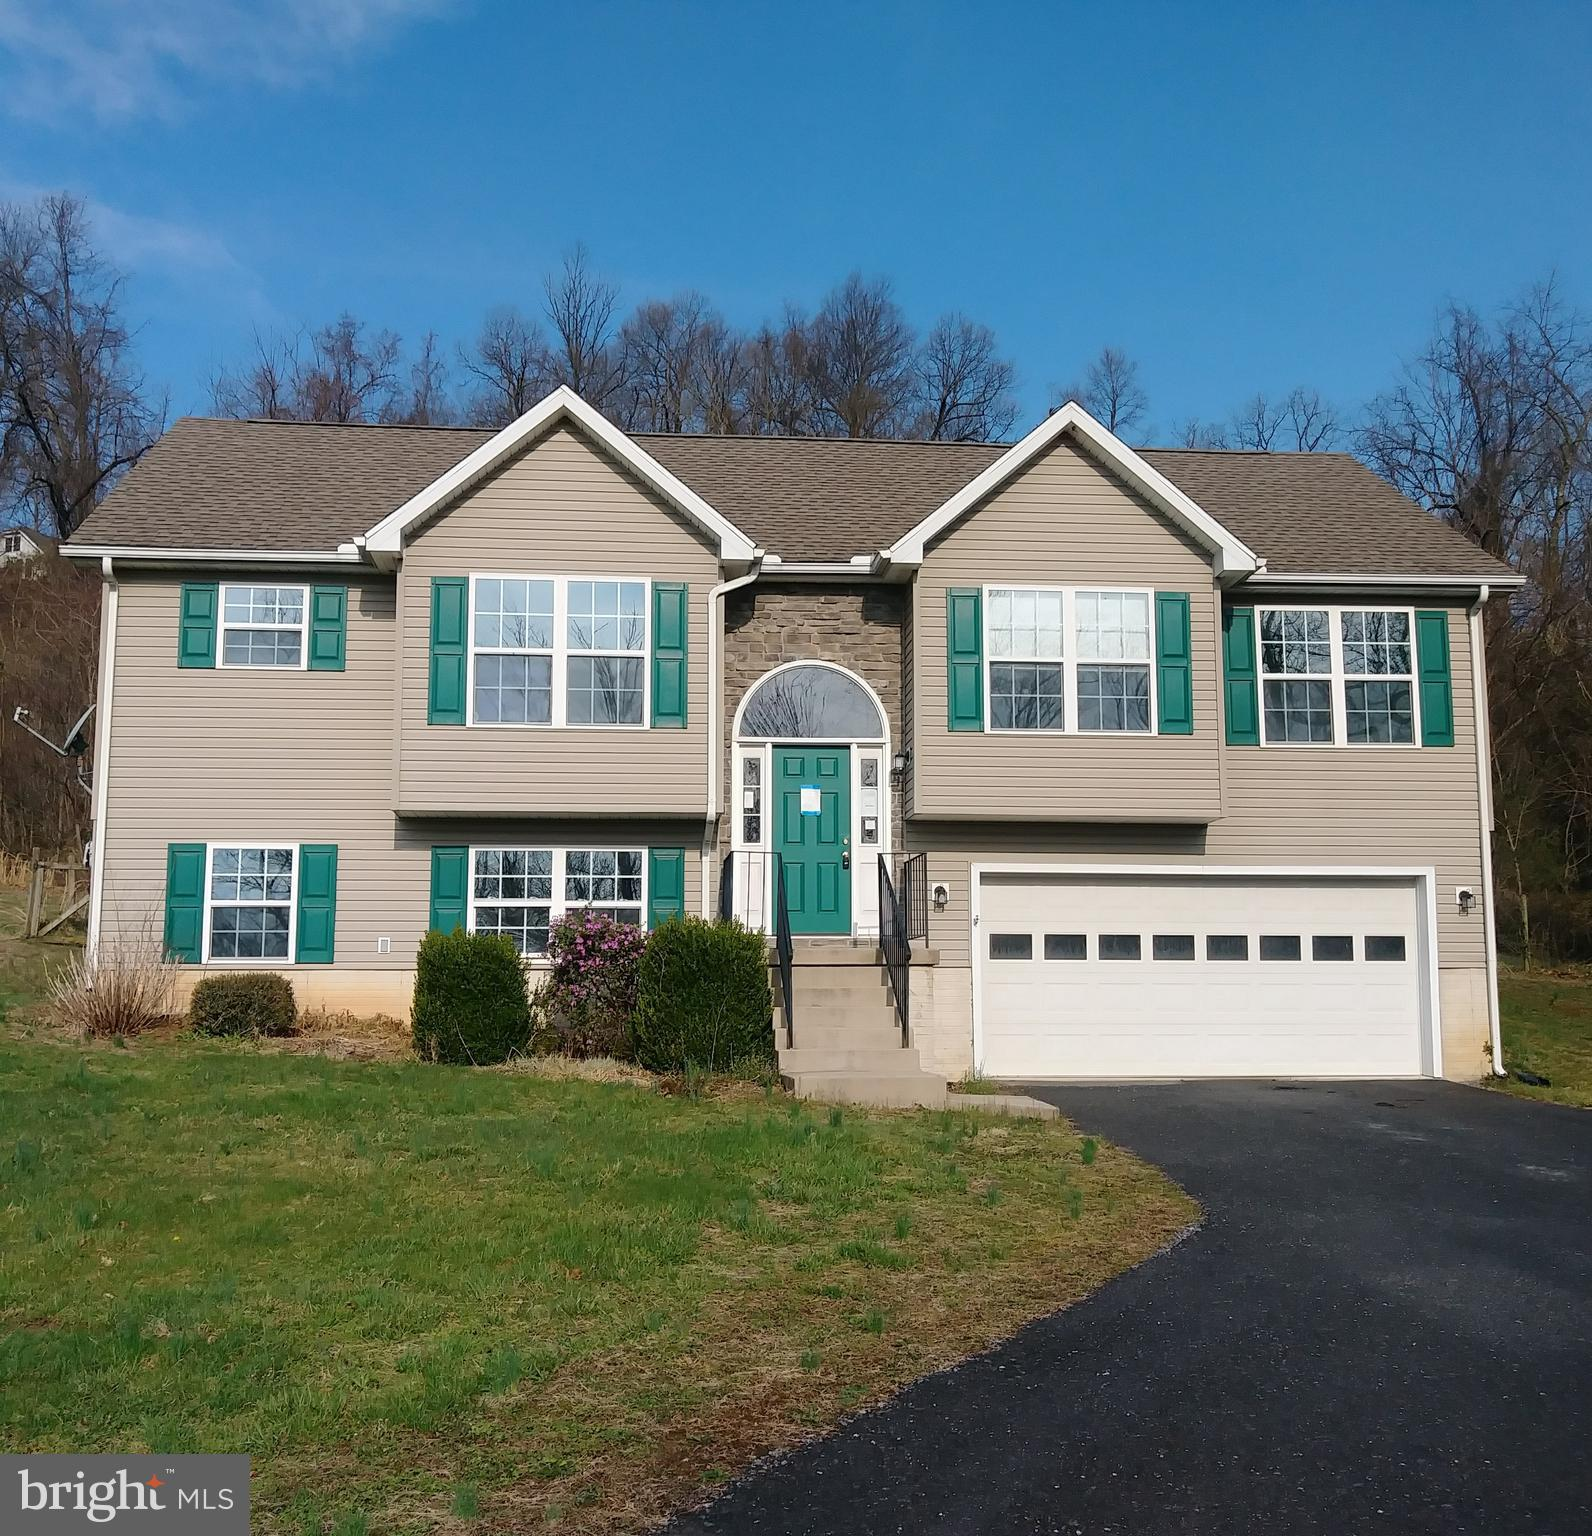 Split Foyer on 1.77 Acres, partially fenced, End corner Lot with wooded area, deck in back of property with entrance through sliding glass doors to Living room, Gas fireplace  in living room, full finished basement with full bath and laundry. Storage  shed on property